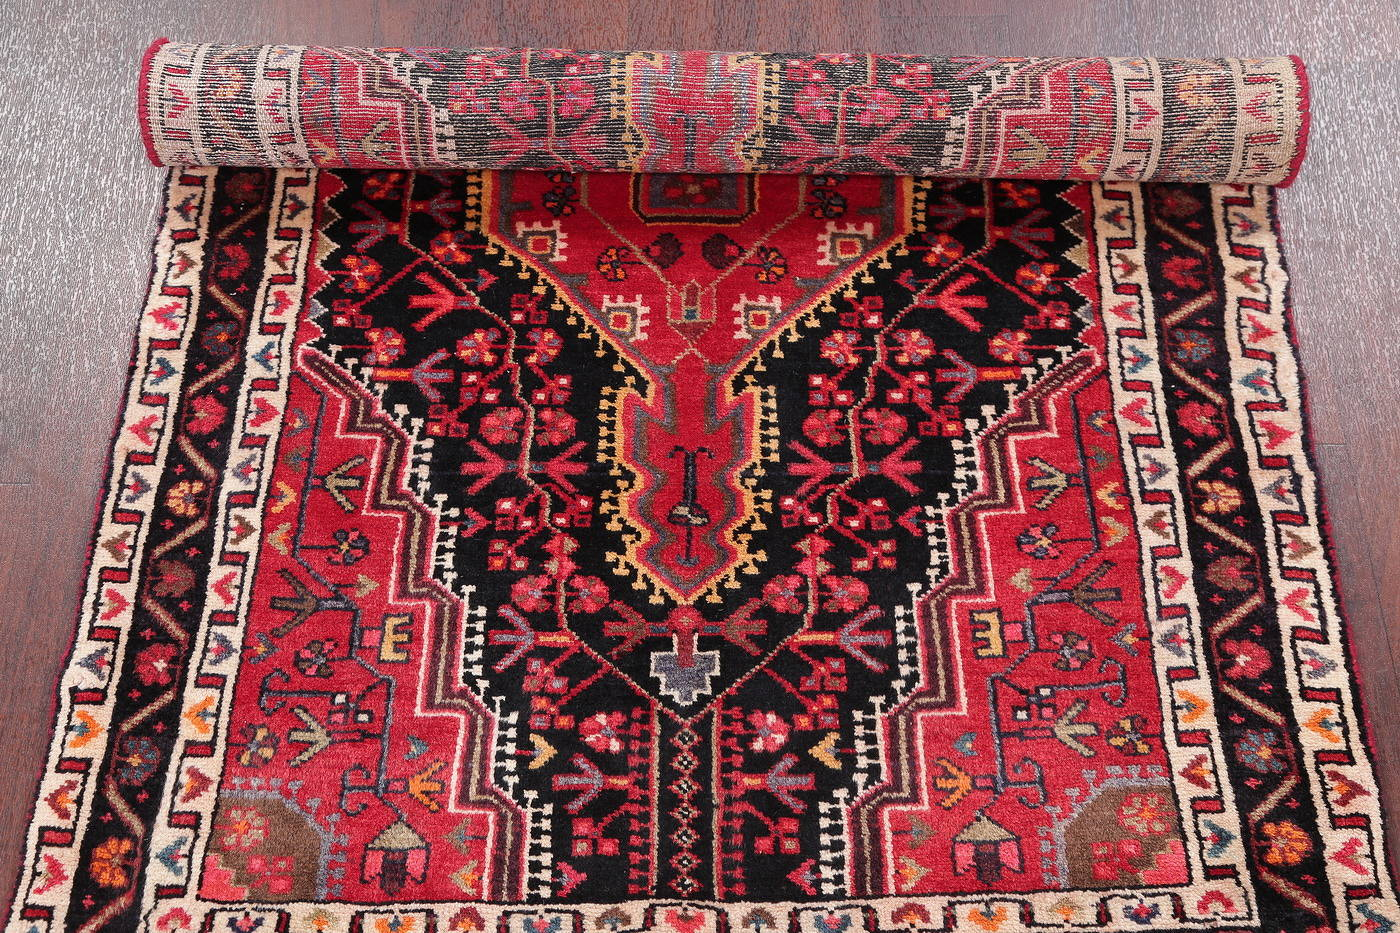 Hand-Knotted Black Tribal Zanjan Persian Wool Rug 3x5